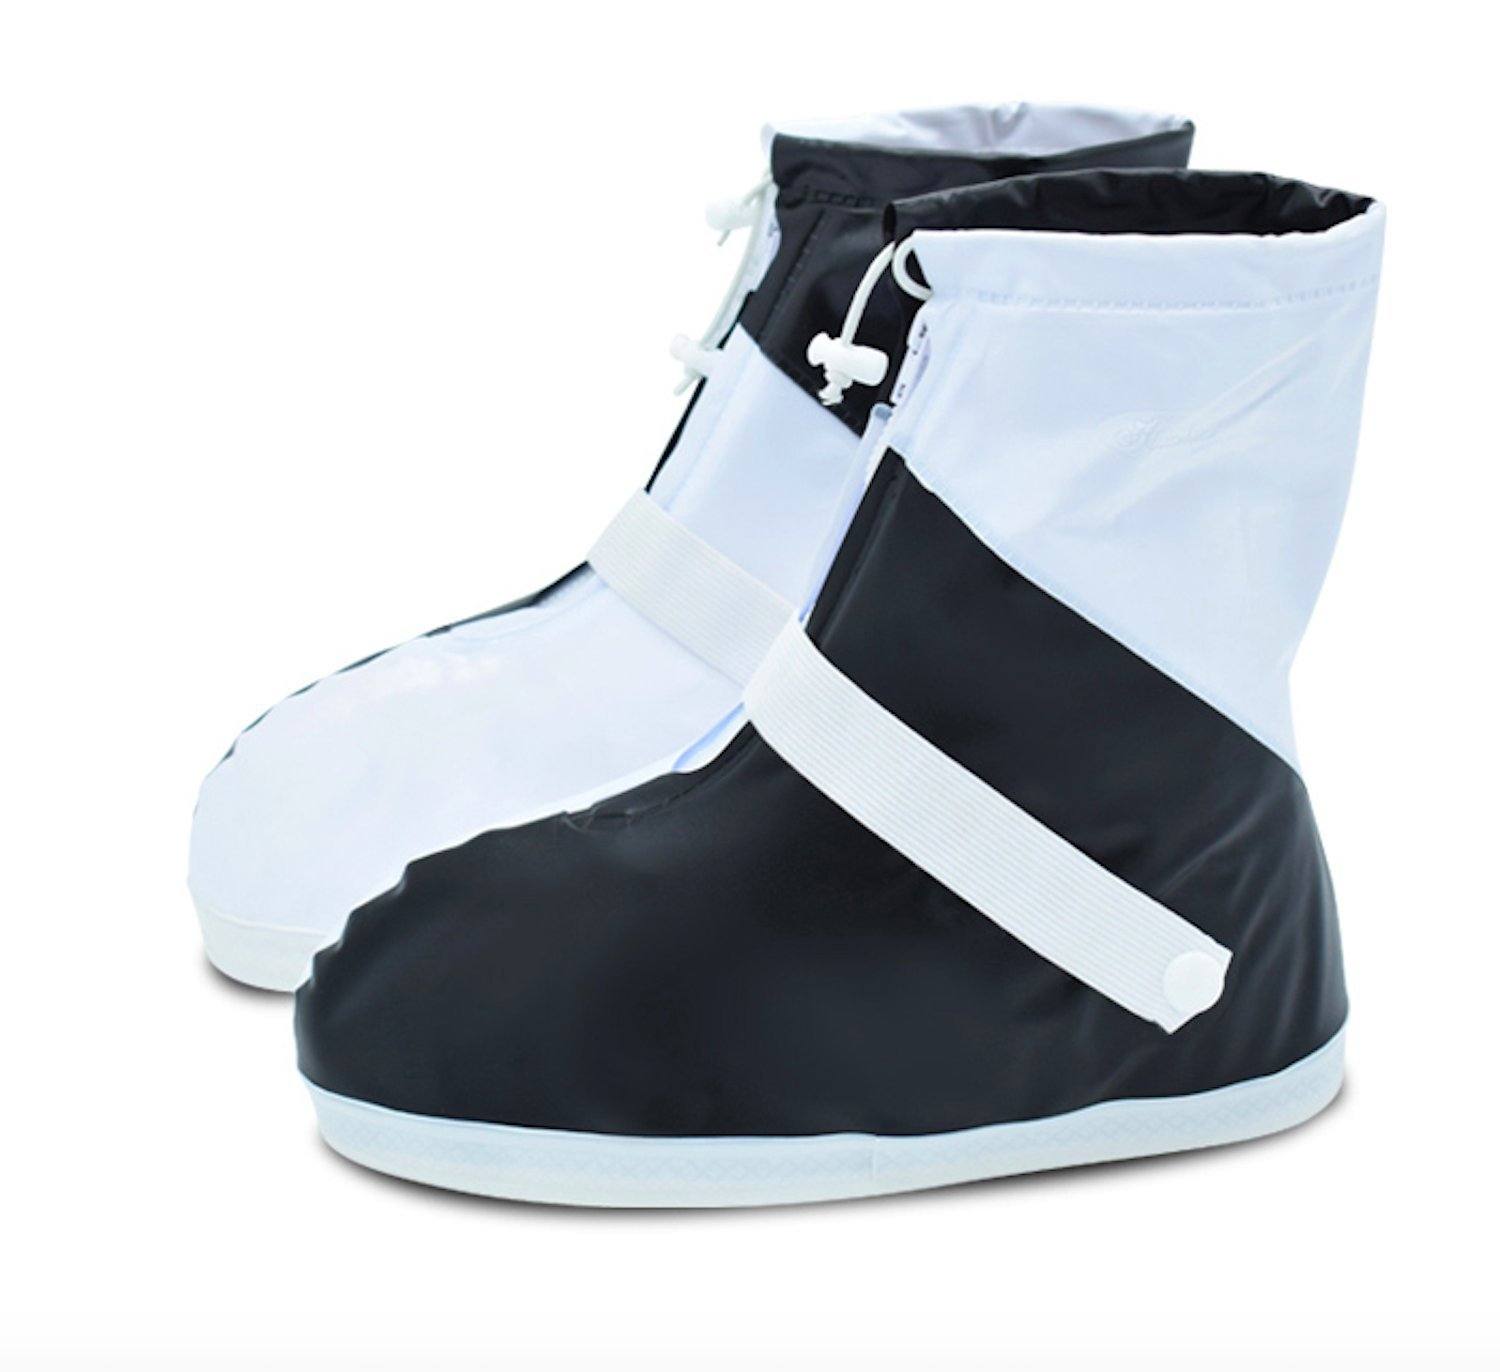 ARUNNERS Rain Boots Shoes Covers Overshoes Galoshes Wellies Gumboots Travel for Women Men (2XL, Black & White)